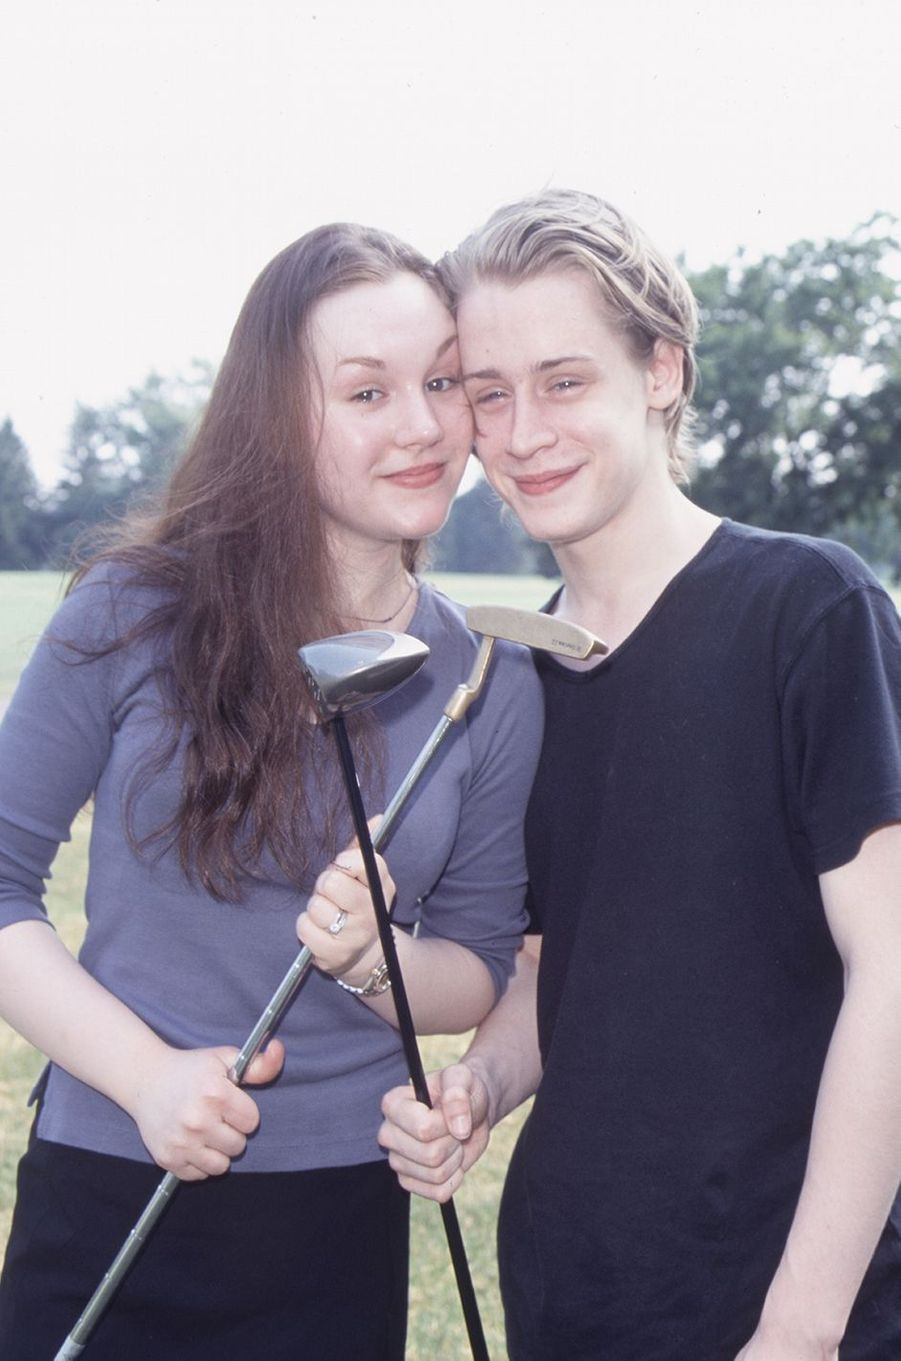 Rachel Miner et Macaulay Culkin lors d'un shooting photo en 1999